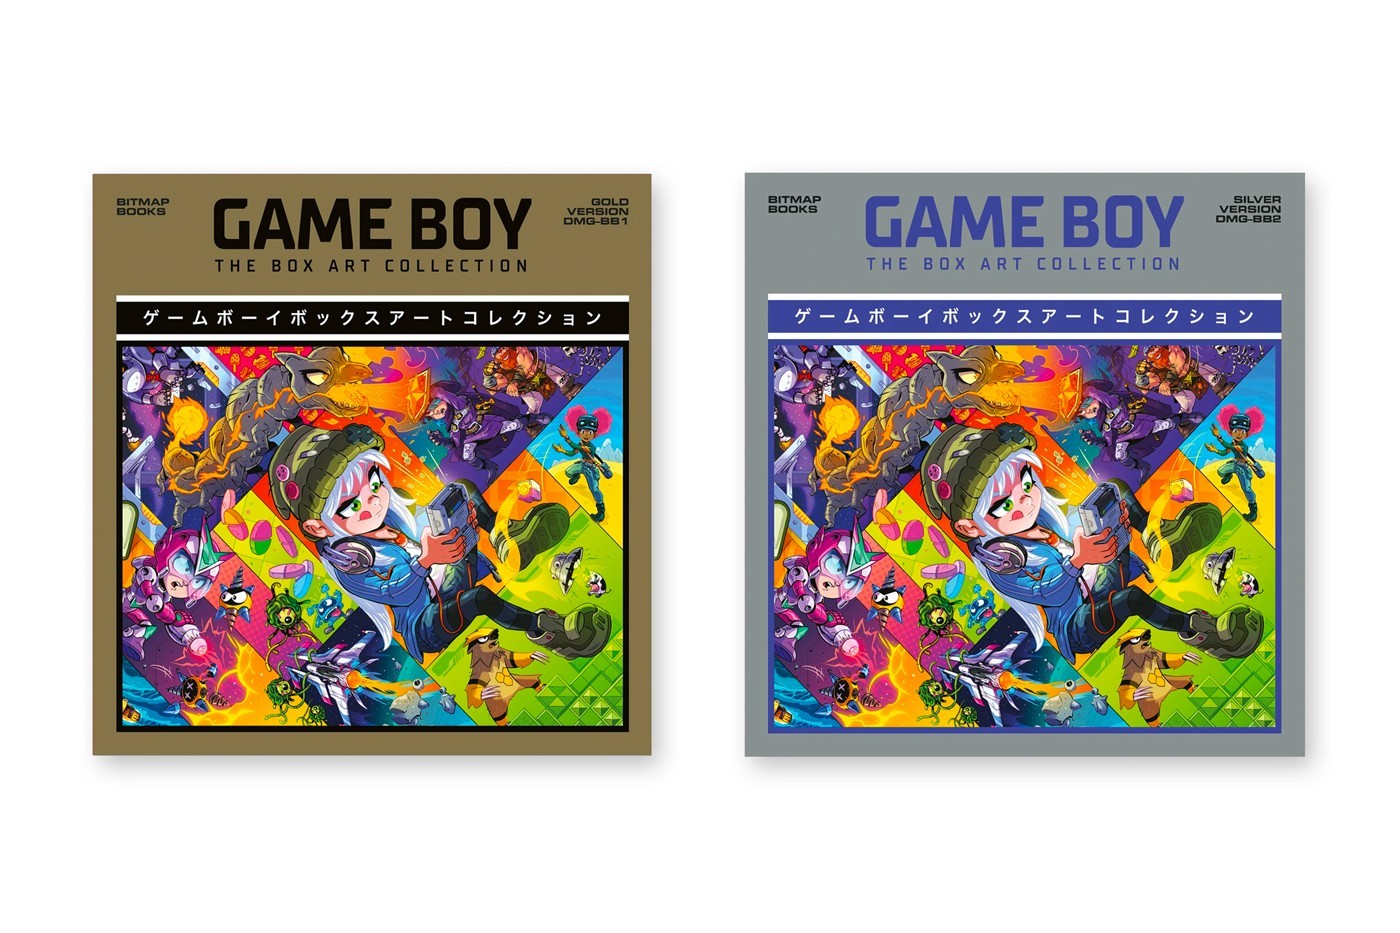 Bitmap Books 推出 Game Boy 典藏书籍《Game Boy: The Box Art Collection》